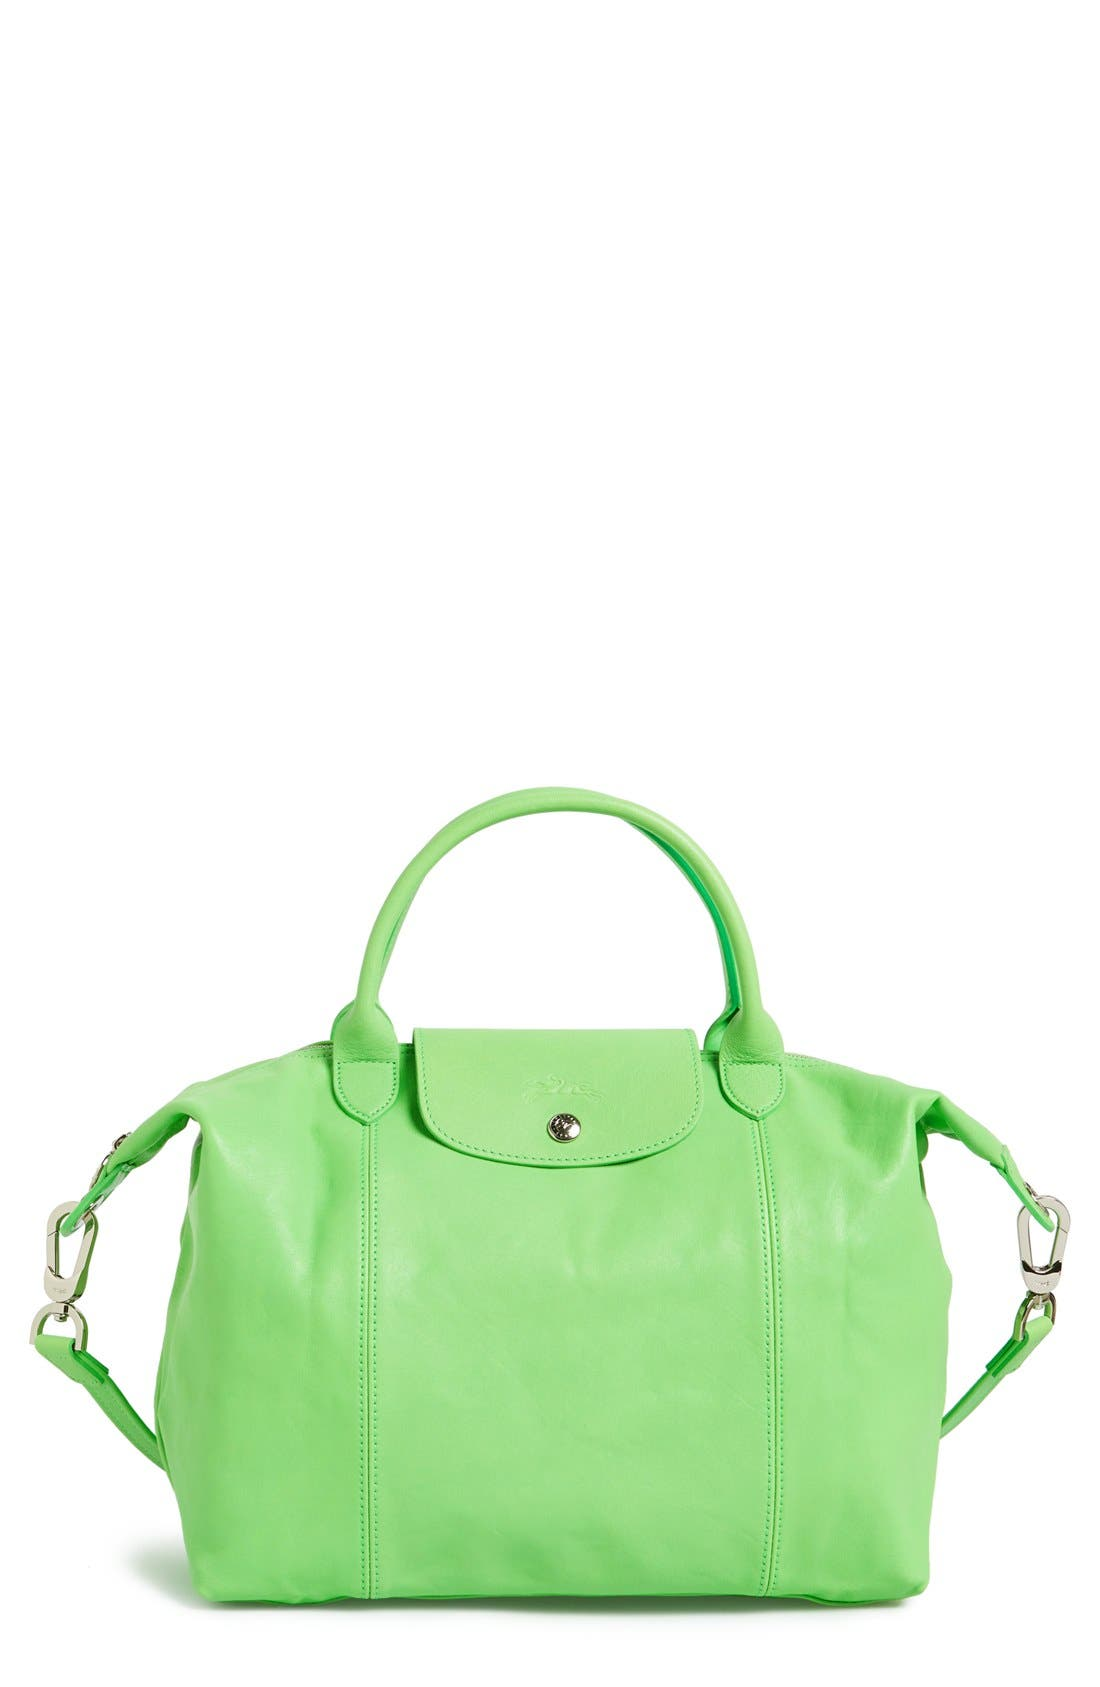 Medium 'Le Pliage Cuir' Leather Top Handle Tote,                             Main thumbnail 14, color,